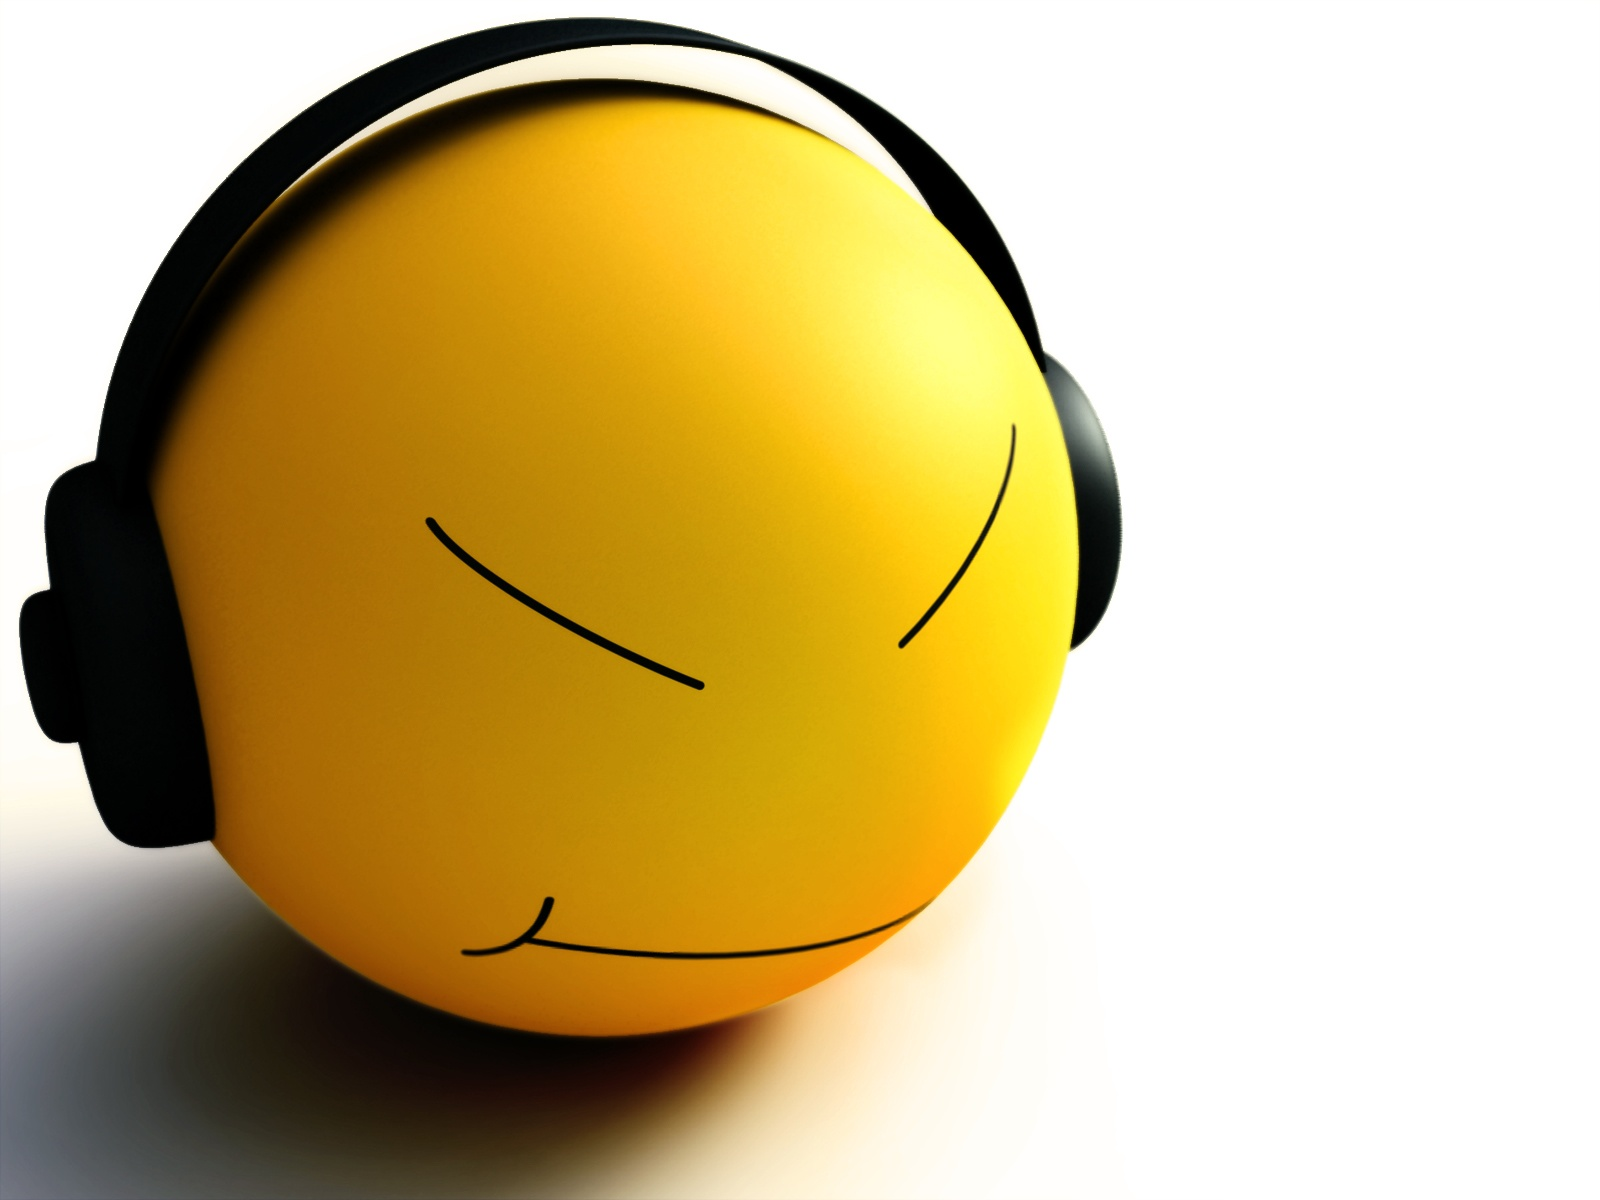 Wallpaper download music - Smiley Listen Music